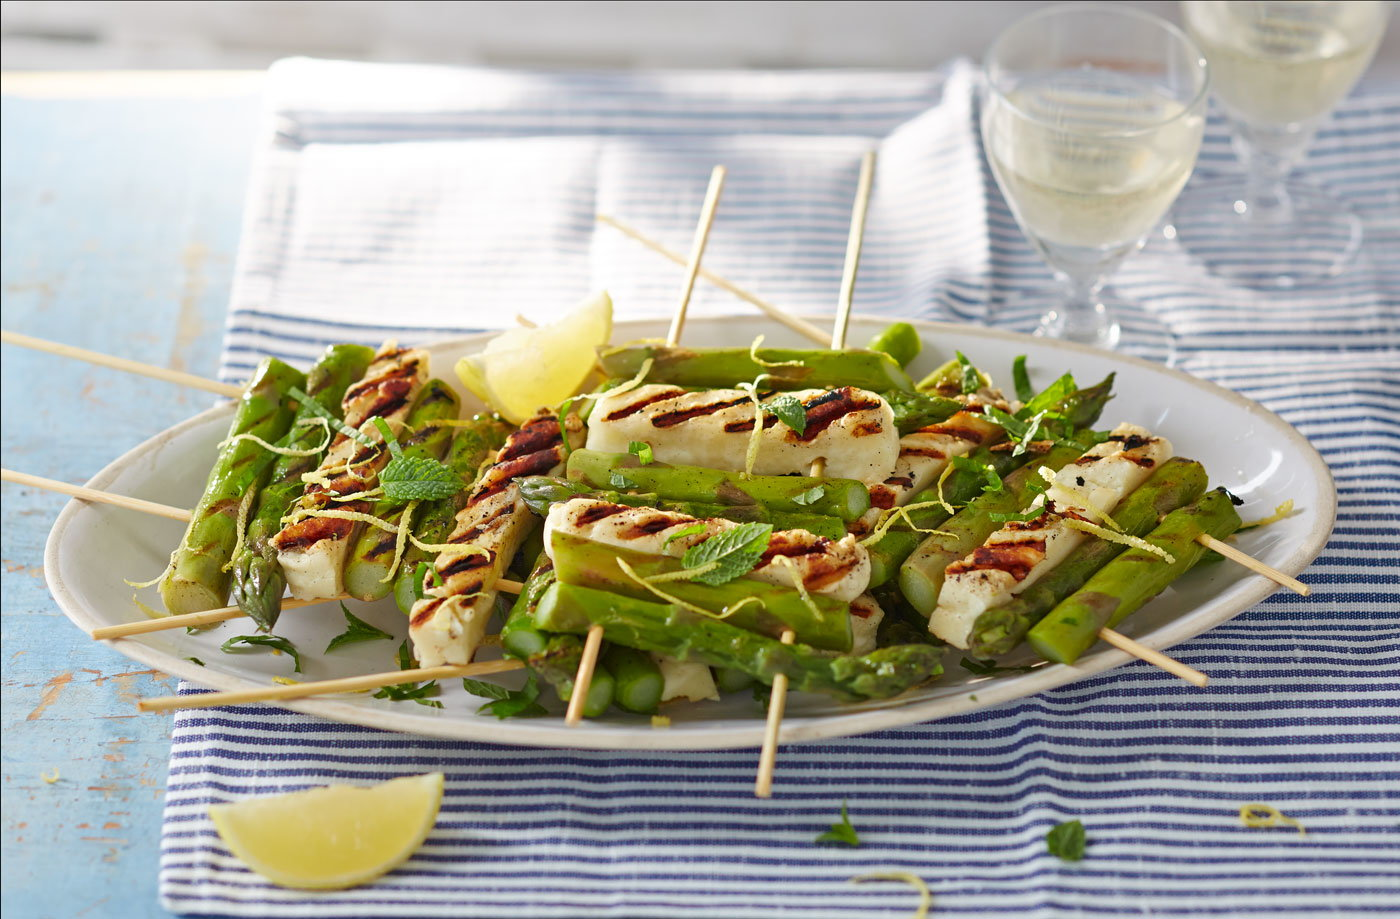 Asparagus and halloumi skewers